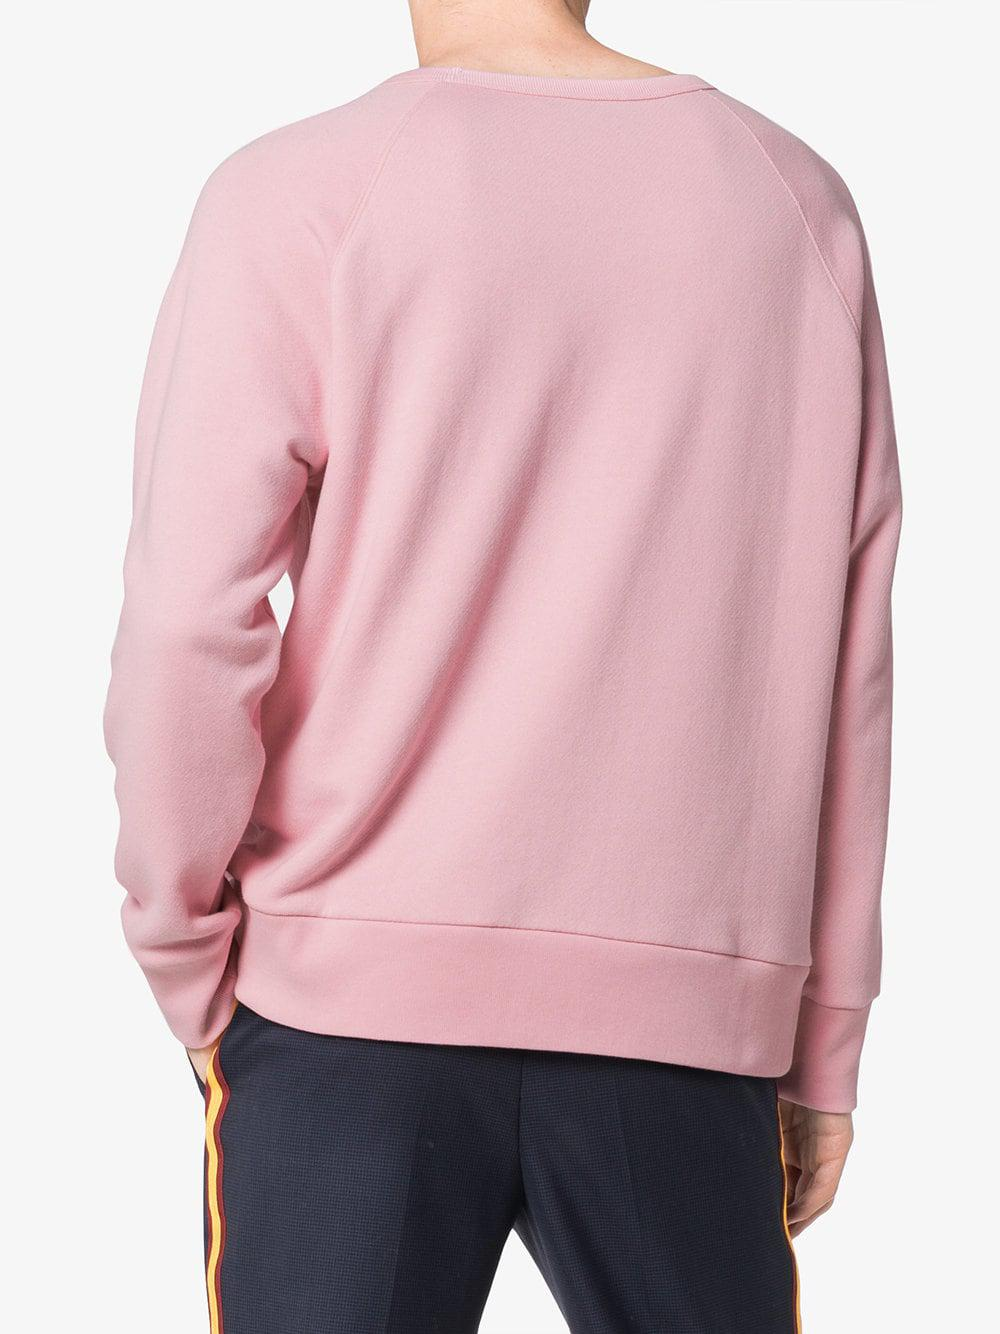 2df7c3c42 Gucci Baby Print Logo Long Sleeve Sweatshirt in Pink for Men - Lyst